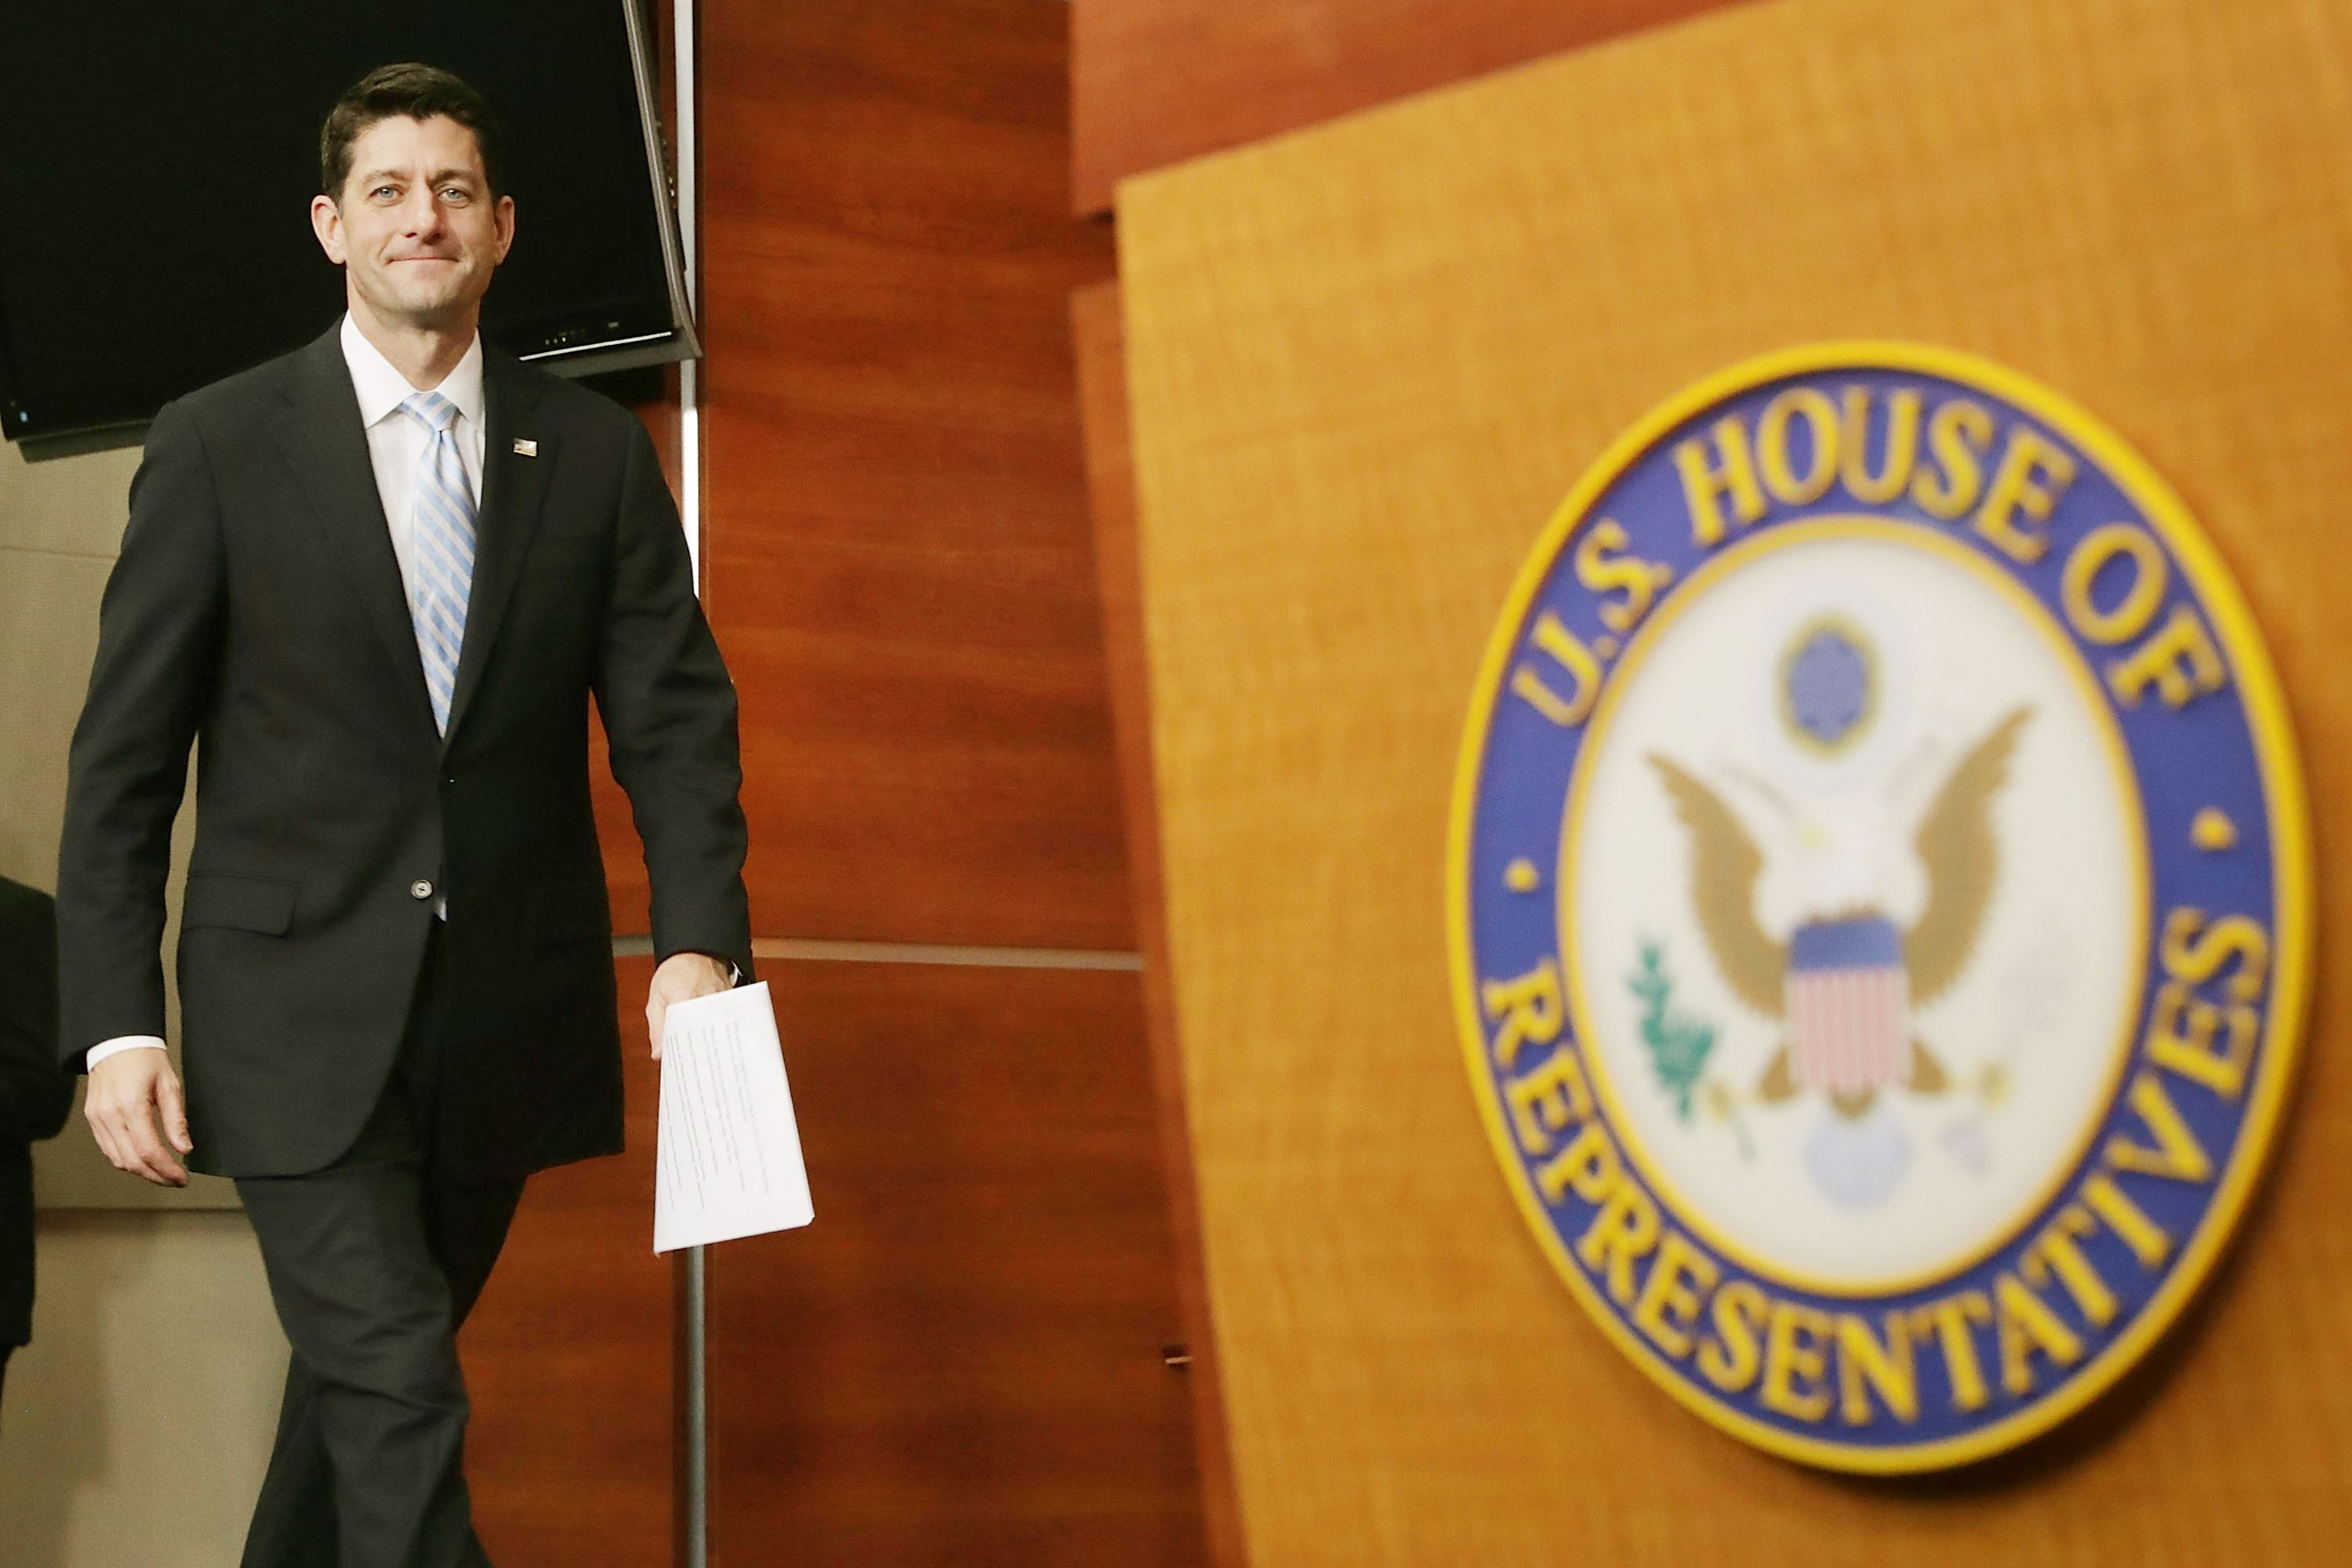 http://post-gazette.com/image/2017/01/12/ca0,0,3000,2000/House-Speaker-Paul-Ryan-Holds-Weekly-News-Conference-5.jpg